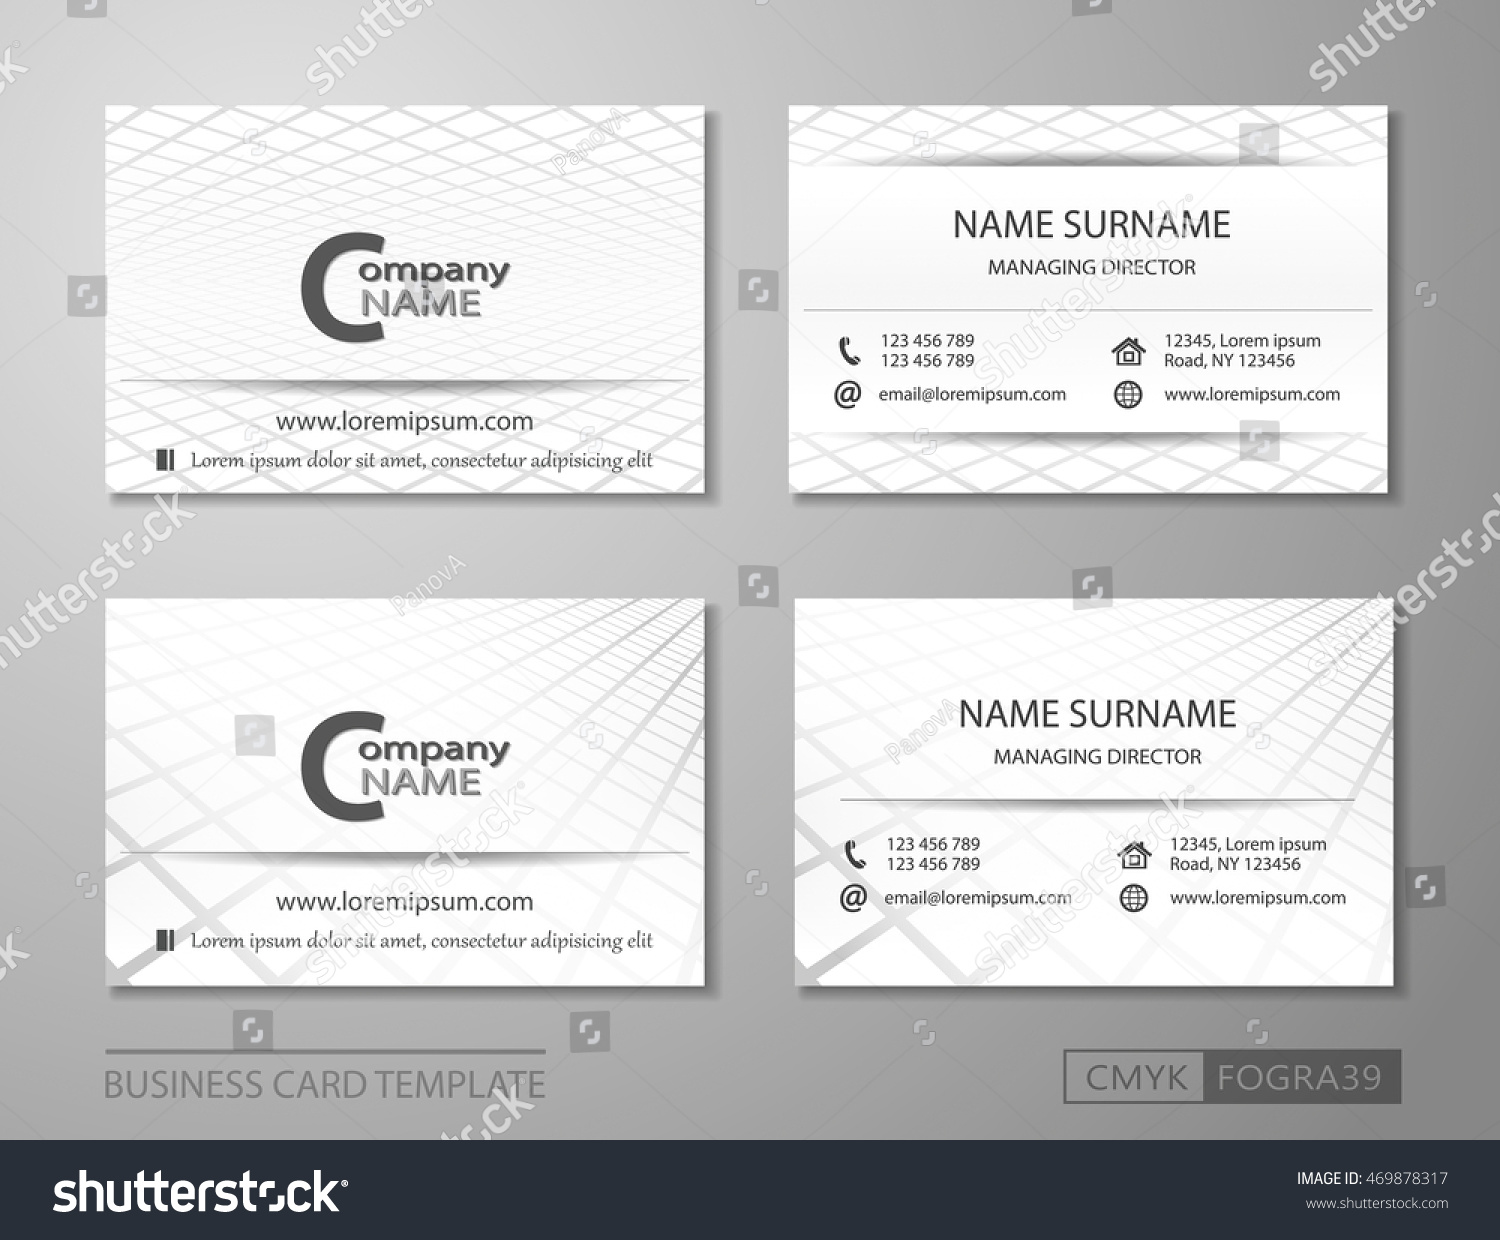 Business card template vcard set businessman stock vector business card template vcard set for businessman or for personal use magicingreecefo Choice Image